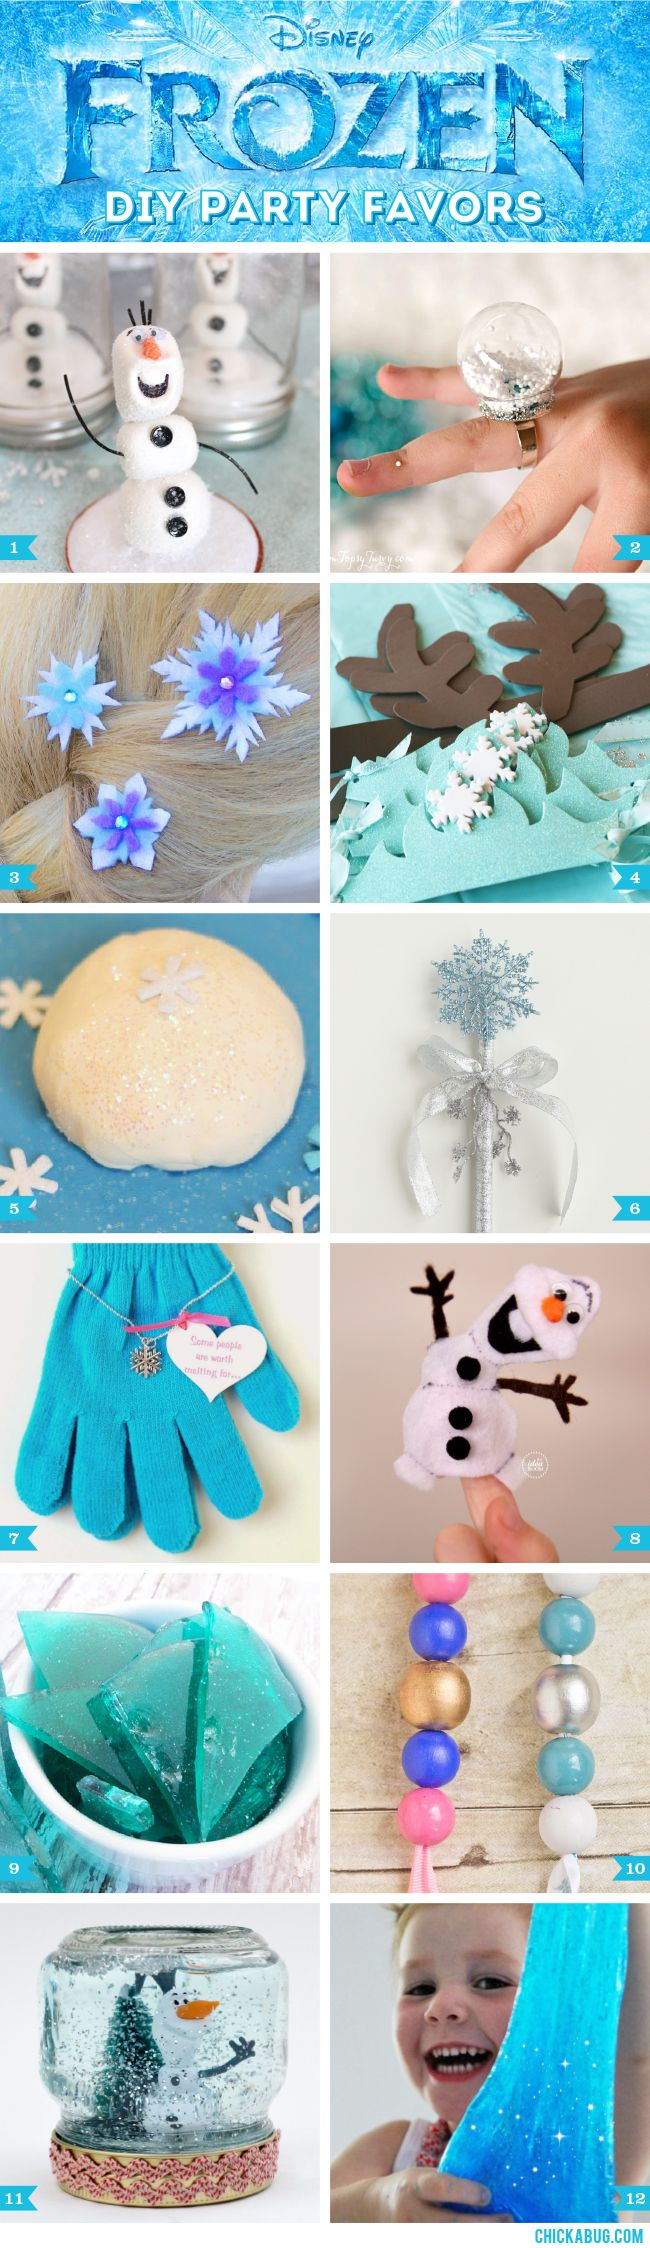 Frozen party favor ideas! #frozenparty